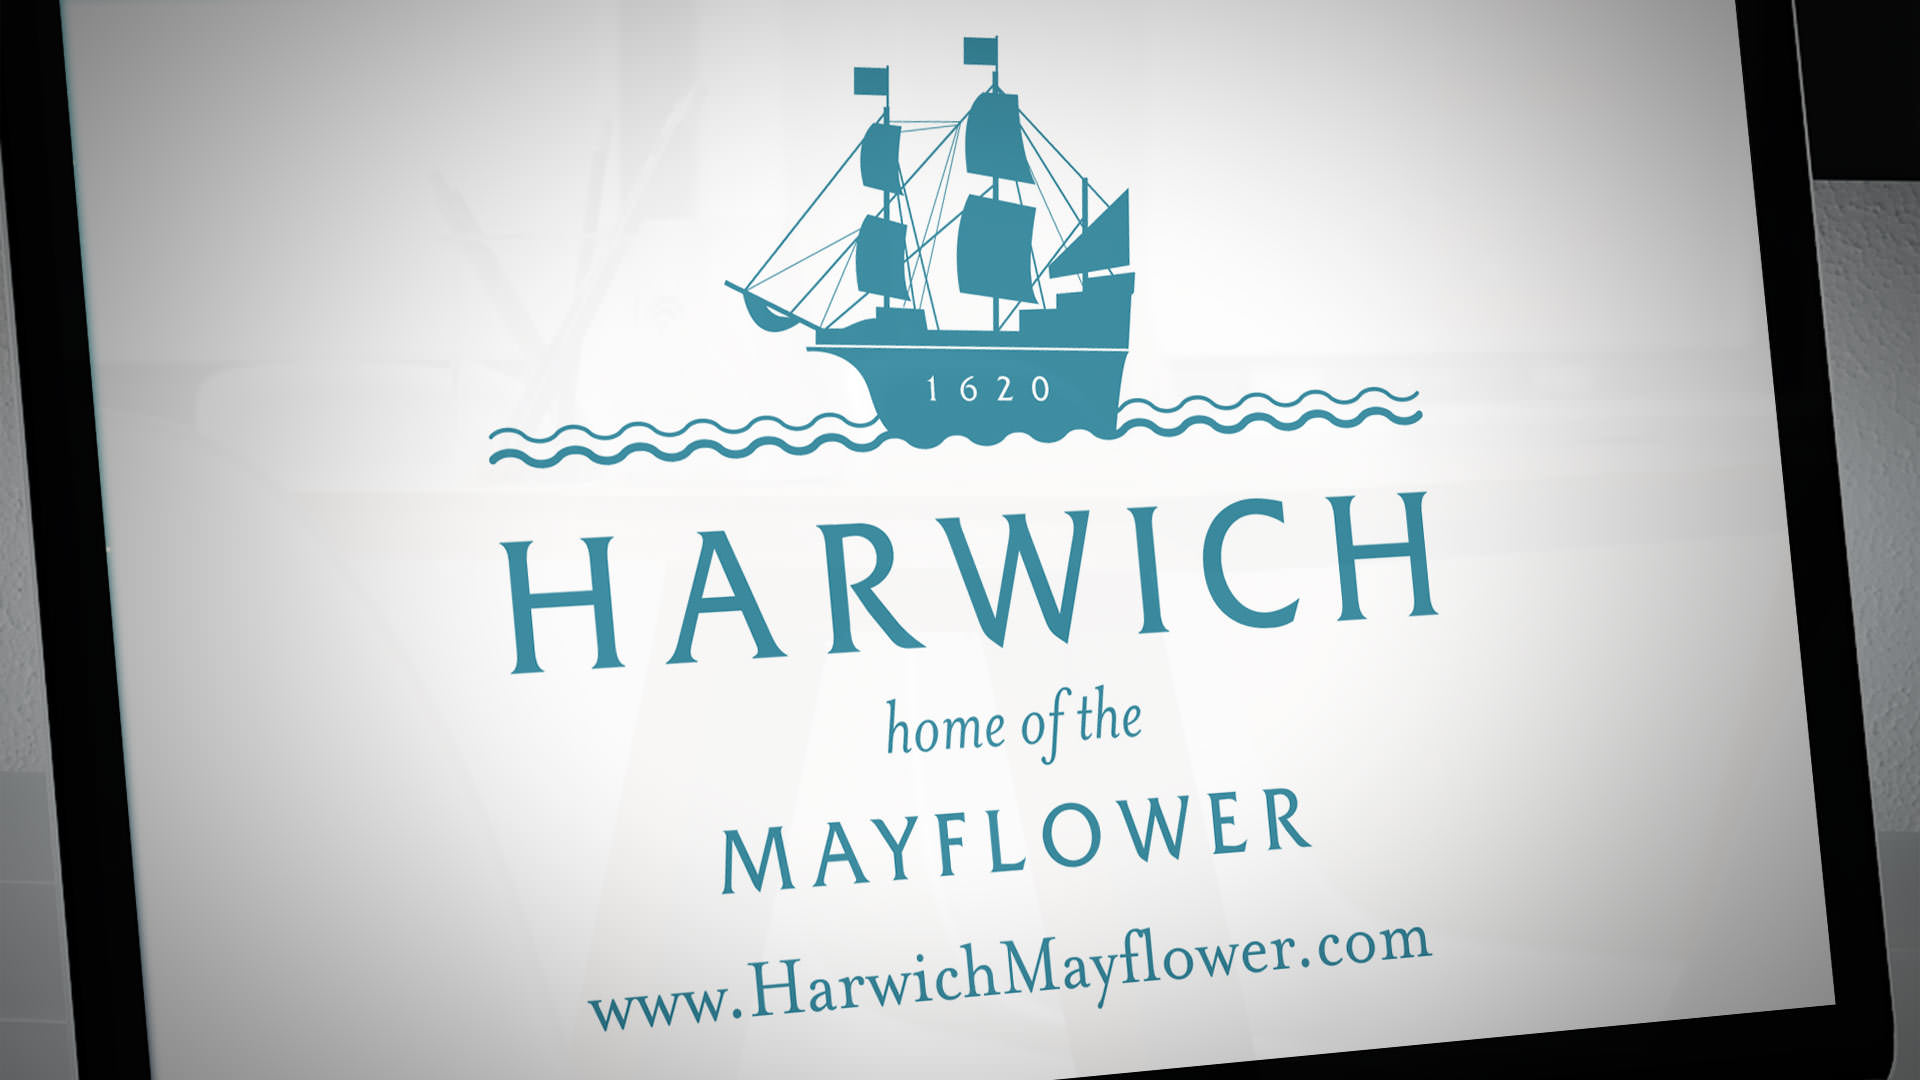 Harwich – The Home of the Mayflower